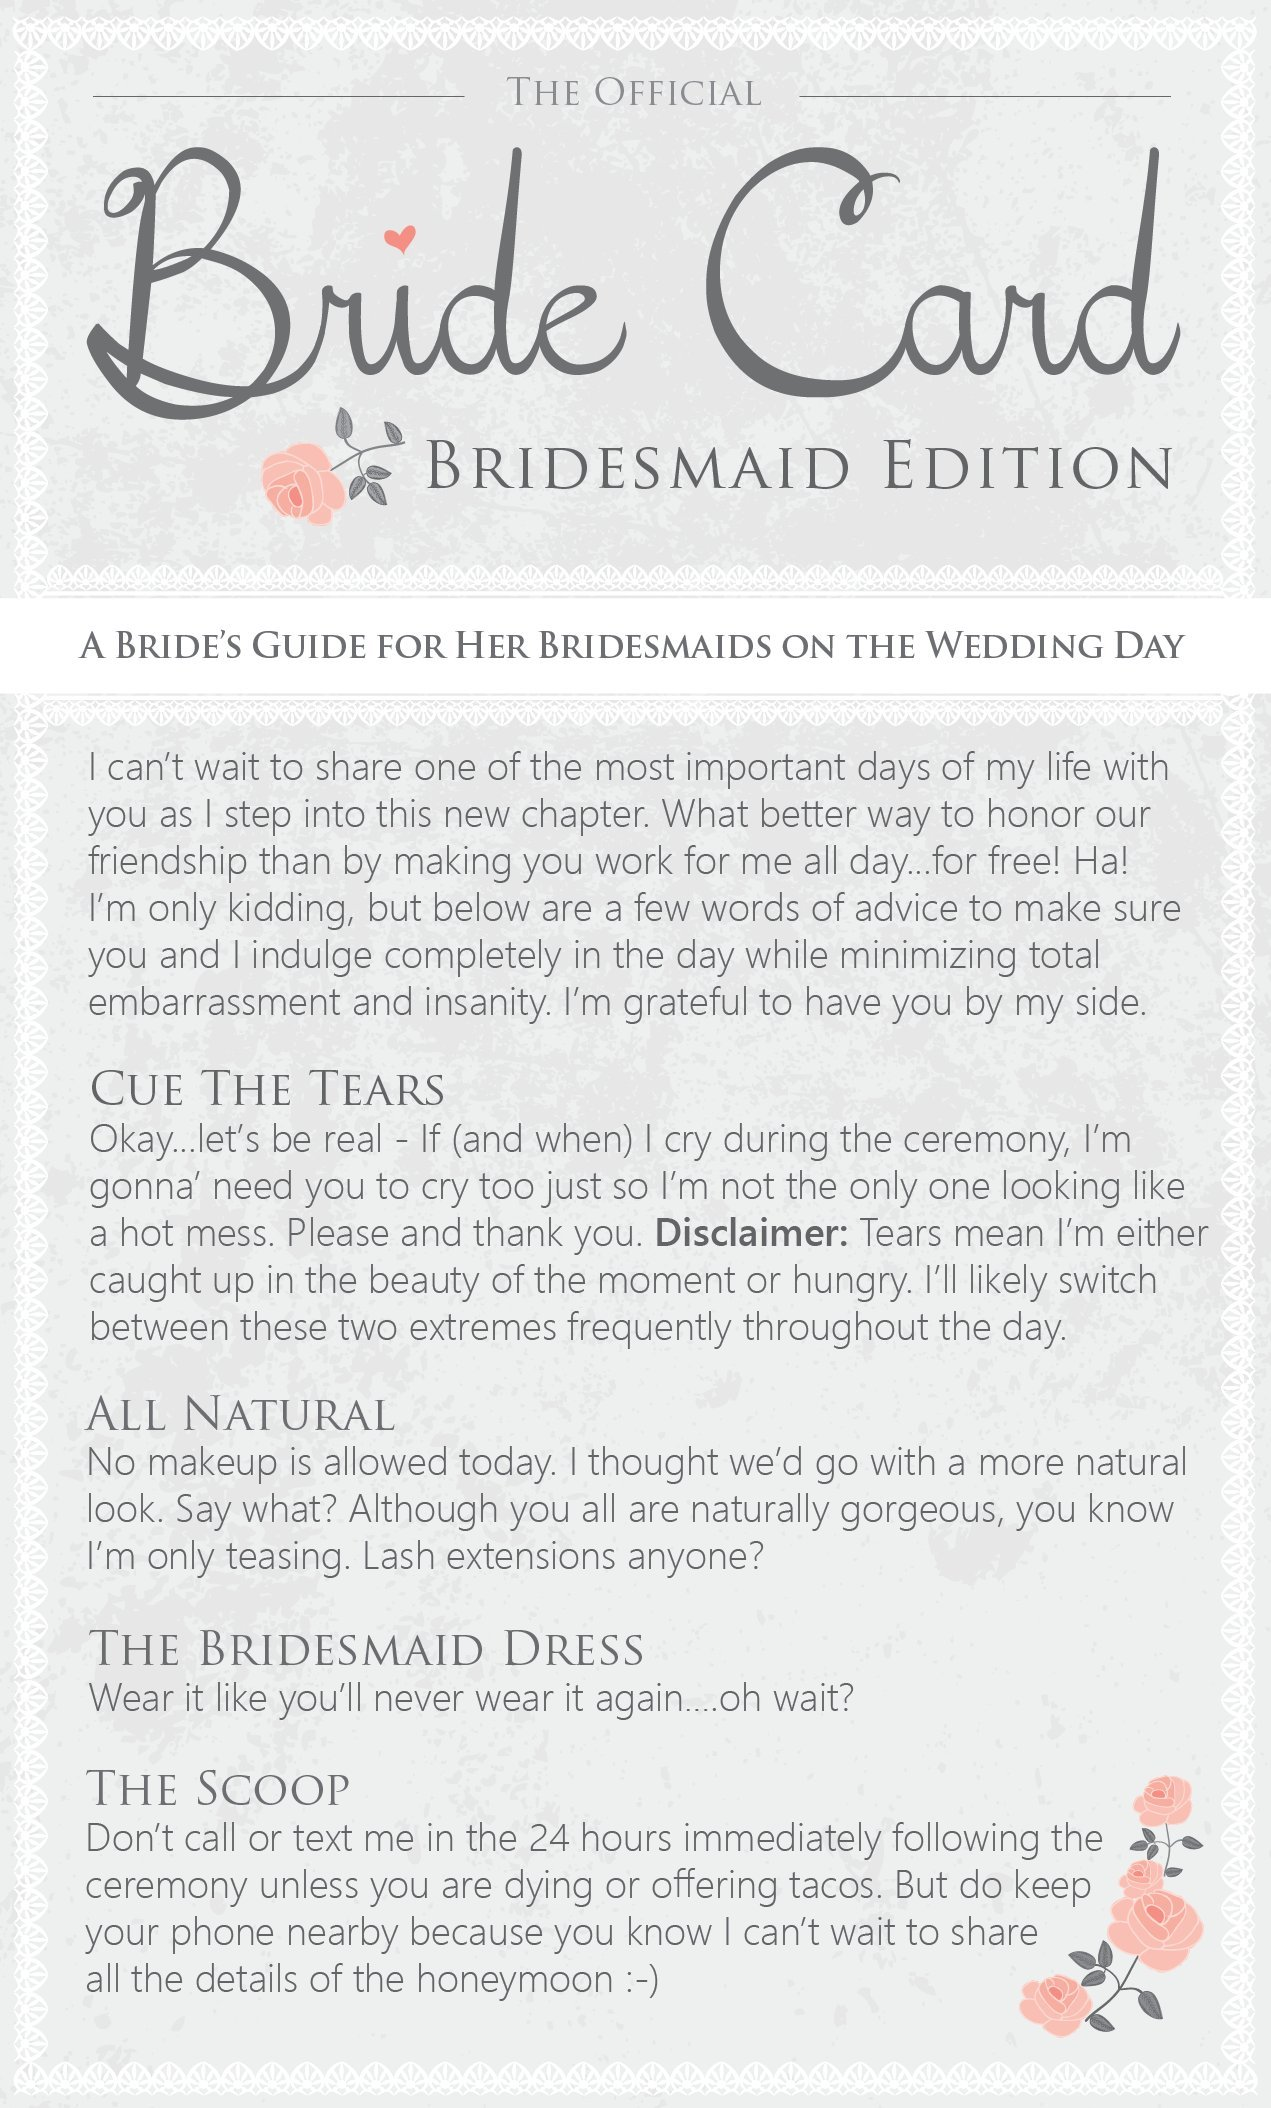 Bridesmaid Gifts - Funny Thank You Cards - Written for Easygoing Brides for Their Bridesmaids - The Bride Card - Bridesmaid Edition - Set of 6